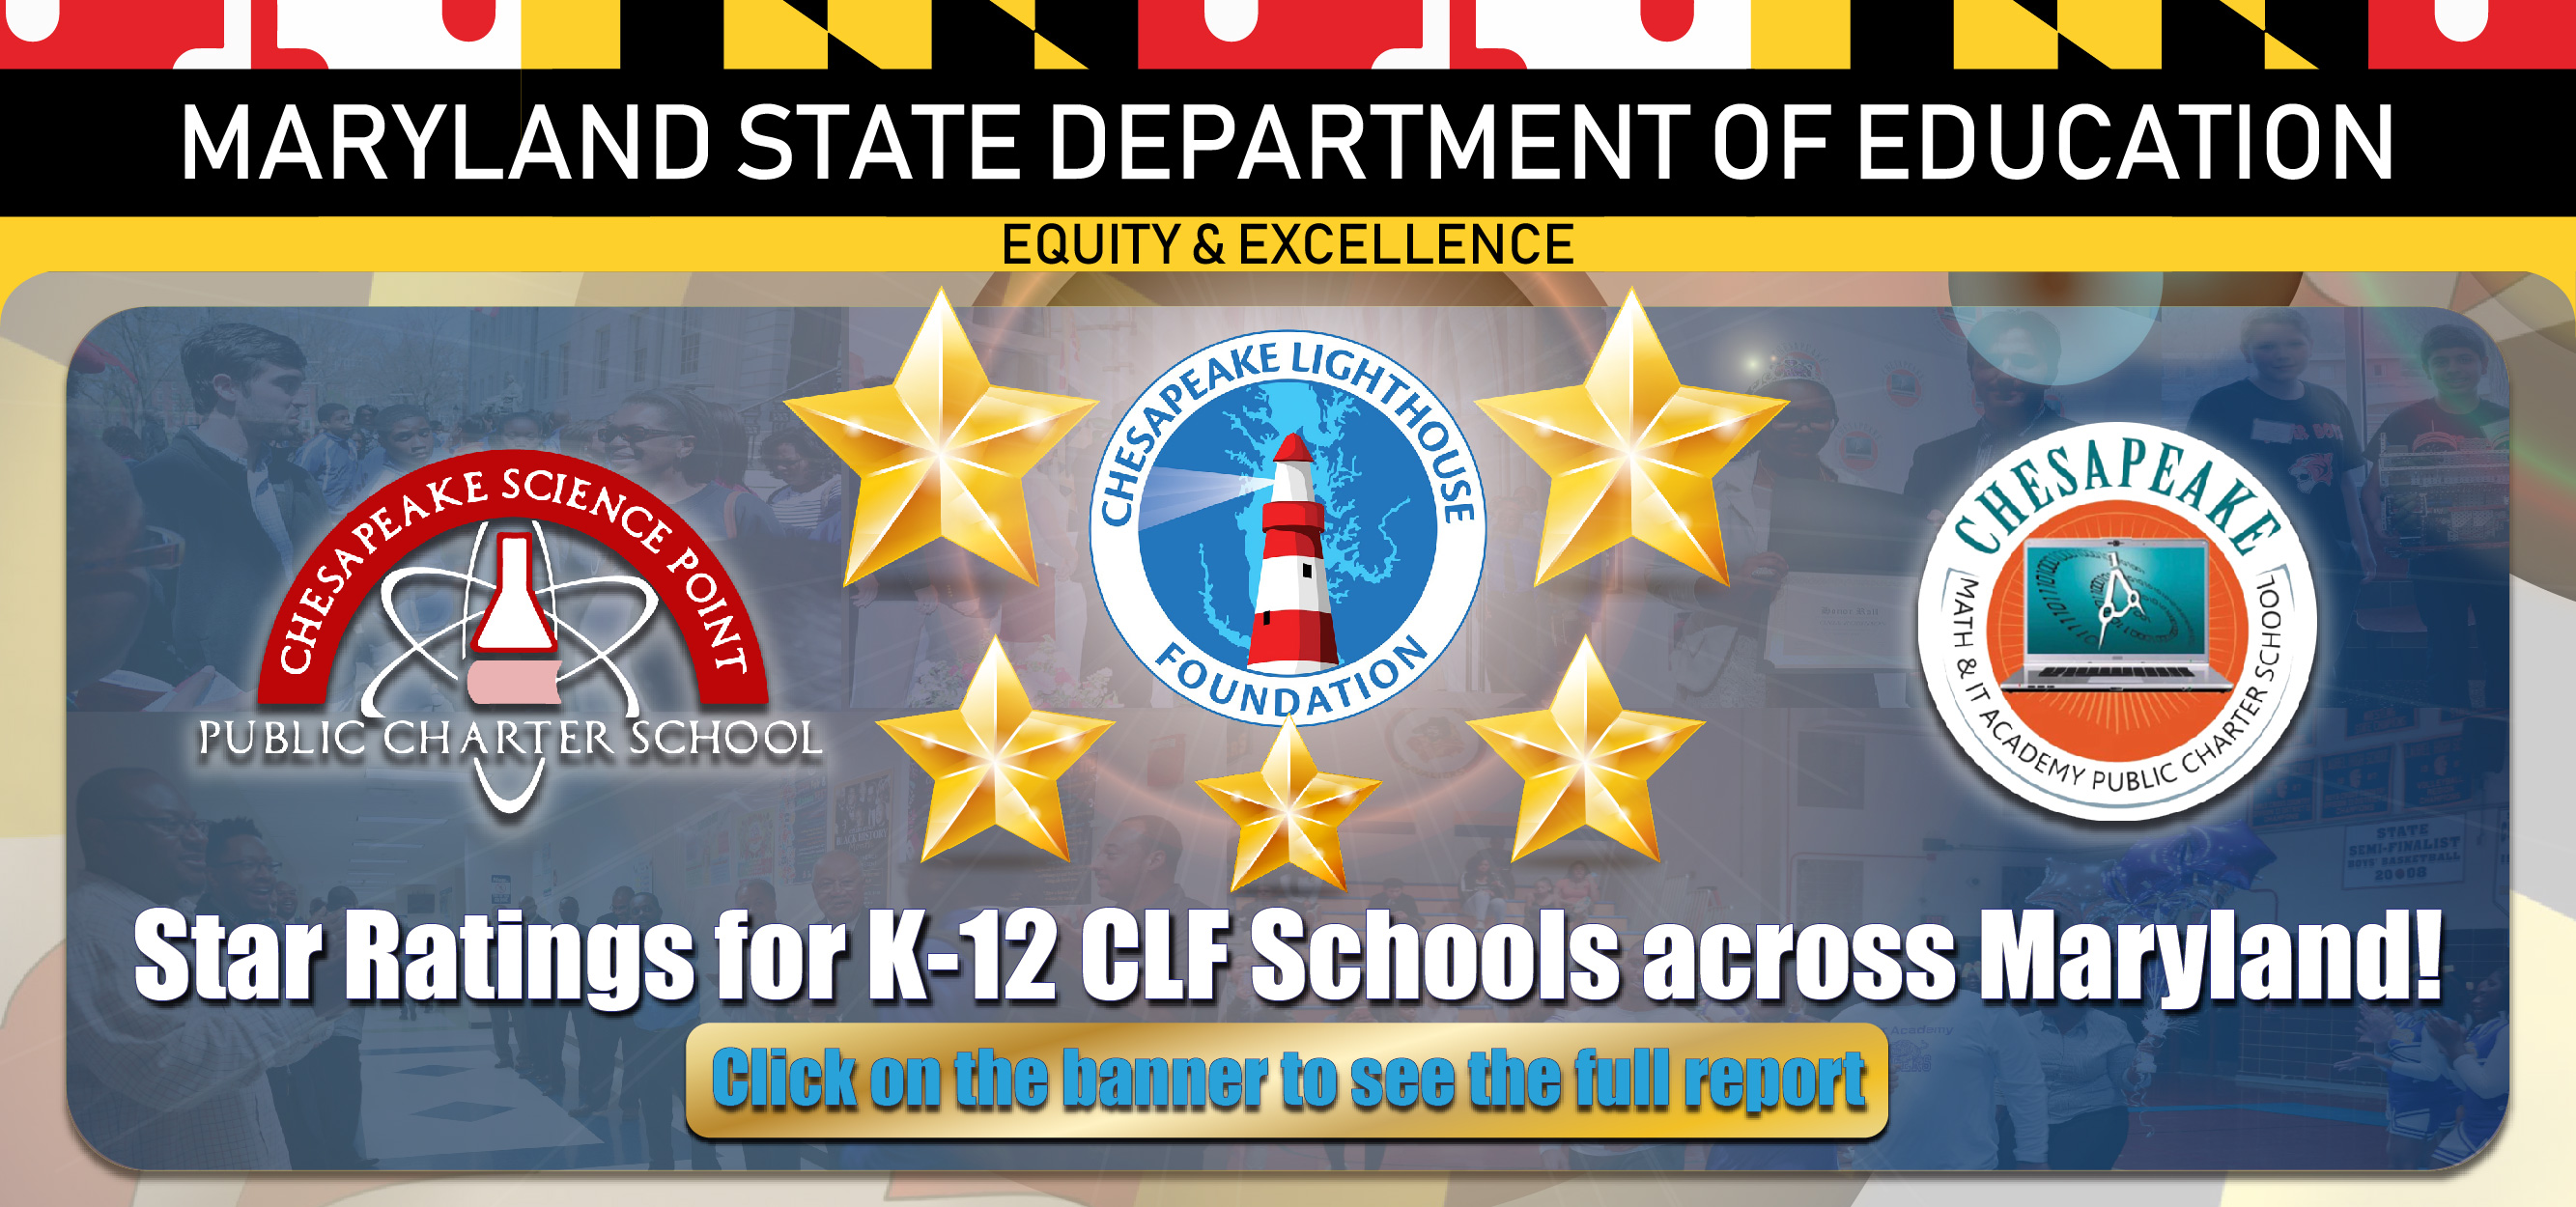 NEW MSDE Star Ratings for 2018-2019